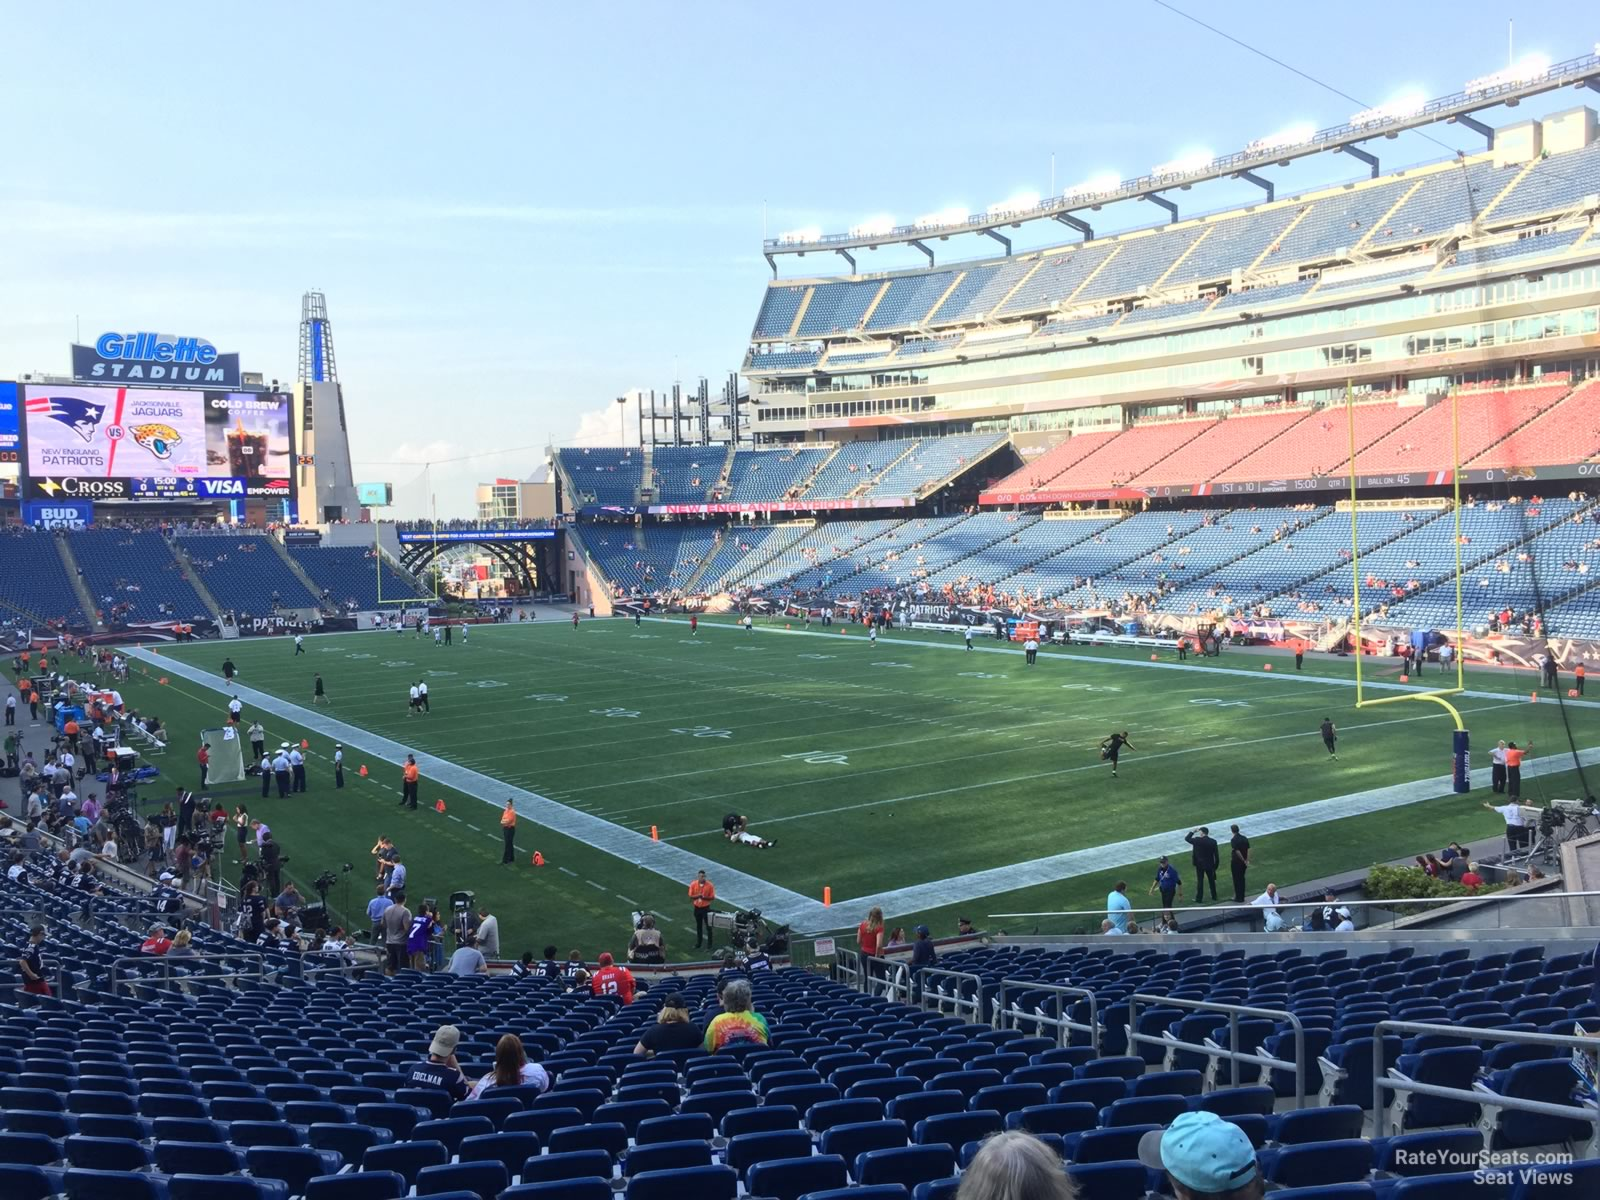 New England Patriots Seat View for Gillette Stadium Section 124, Row 29